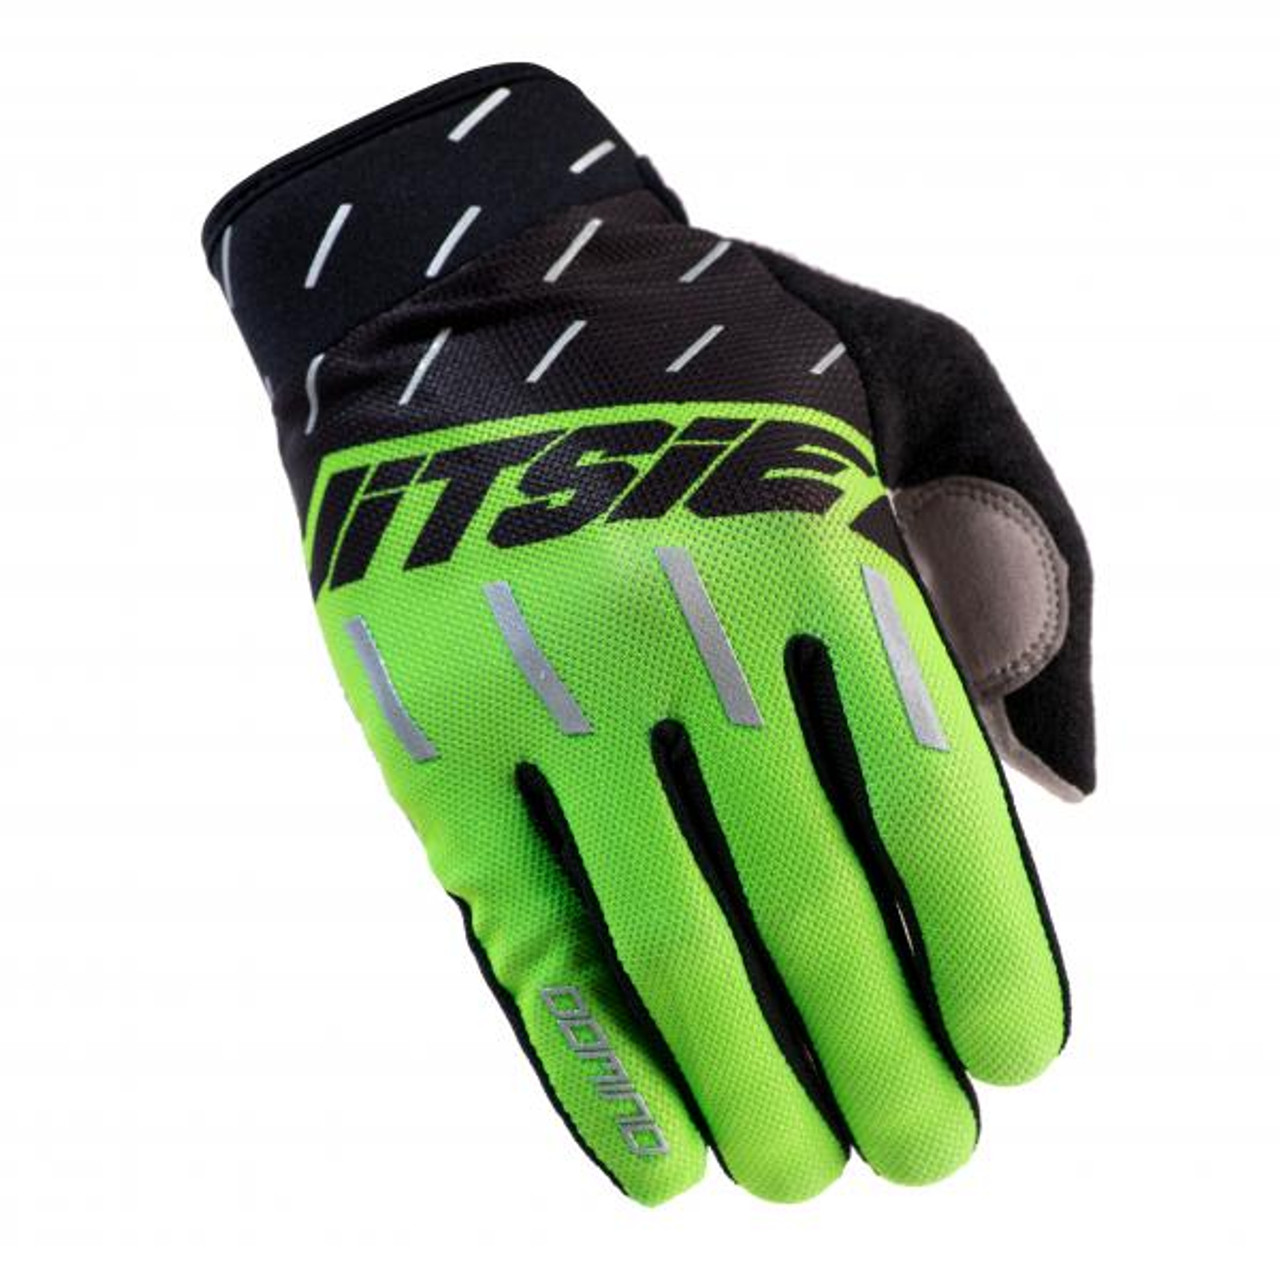 Gloves Domino, black/ fluo green/ silver